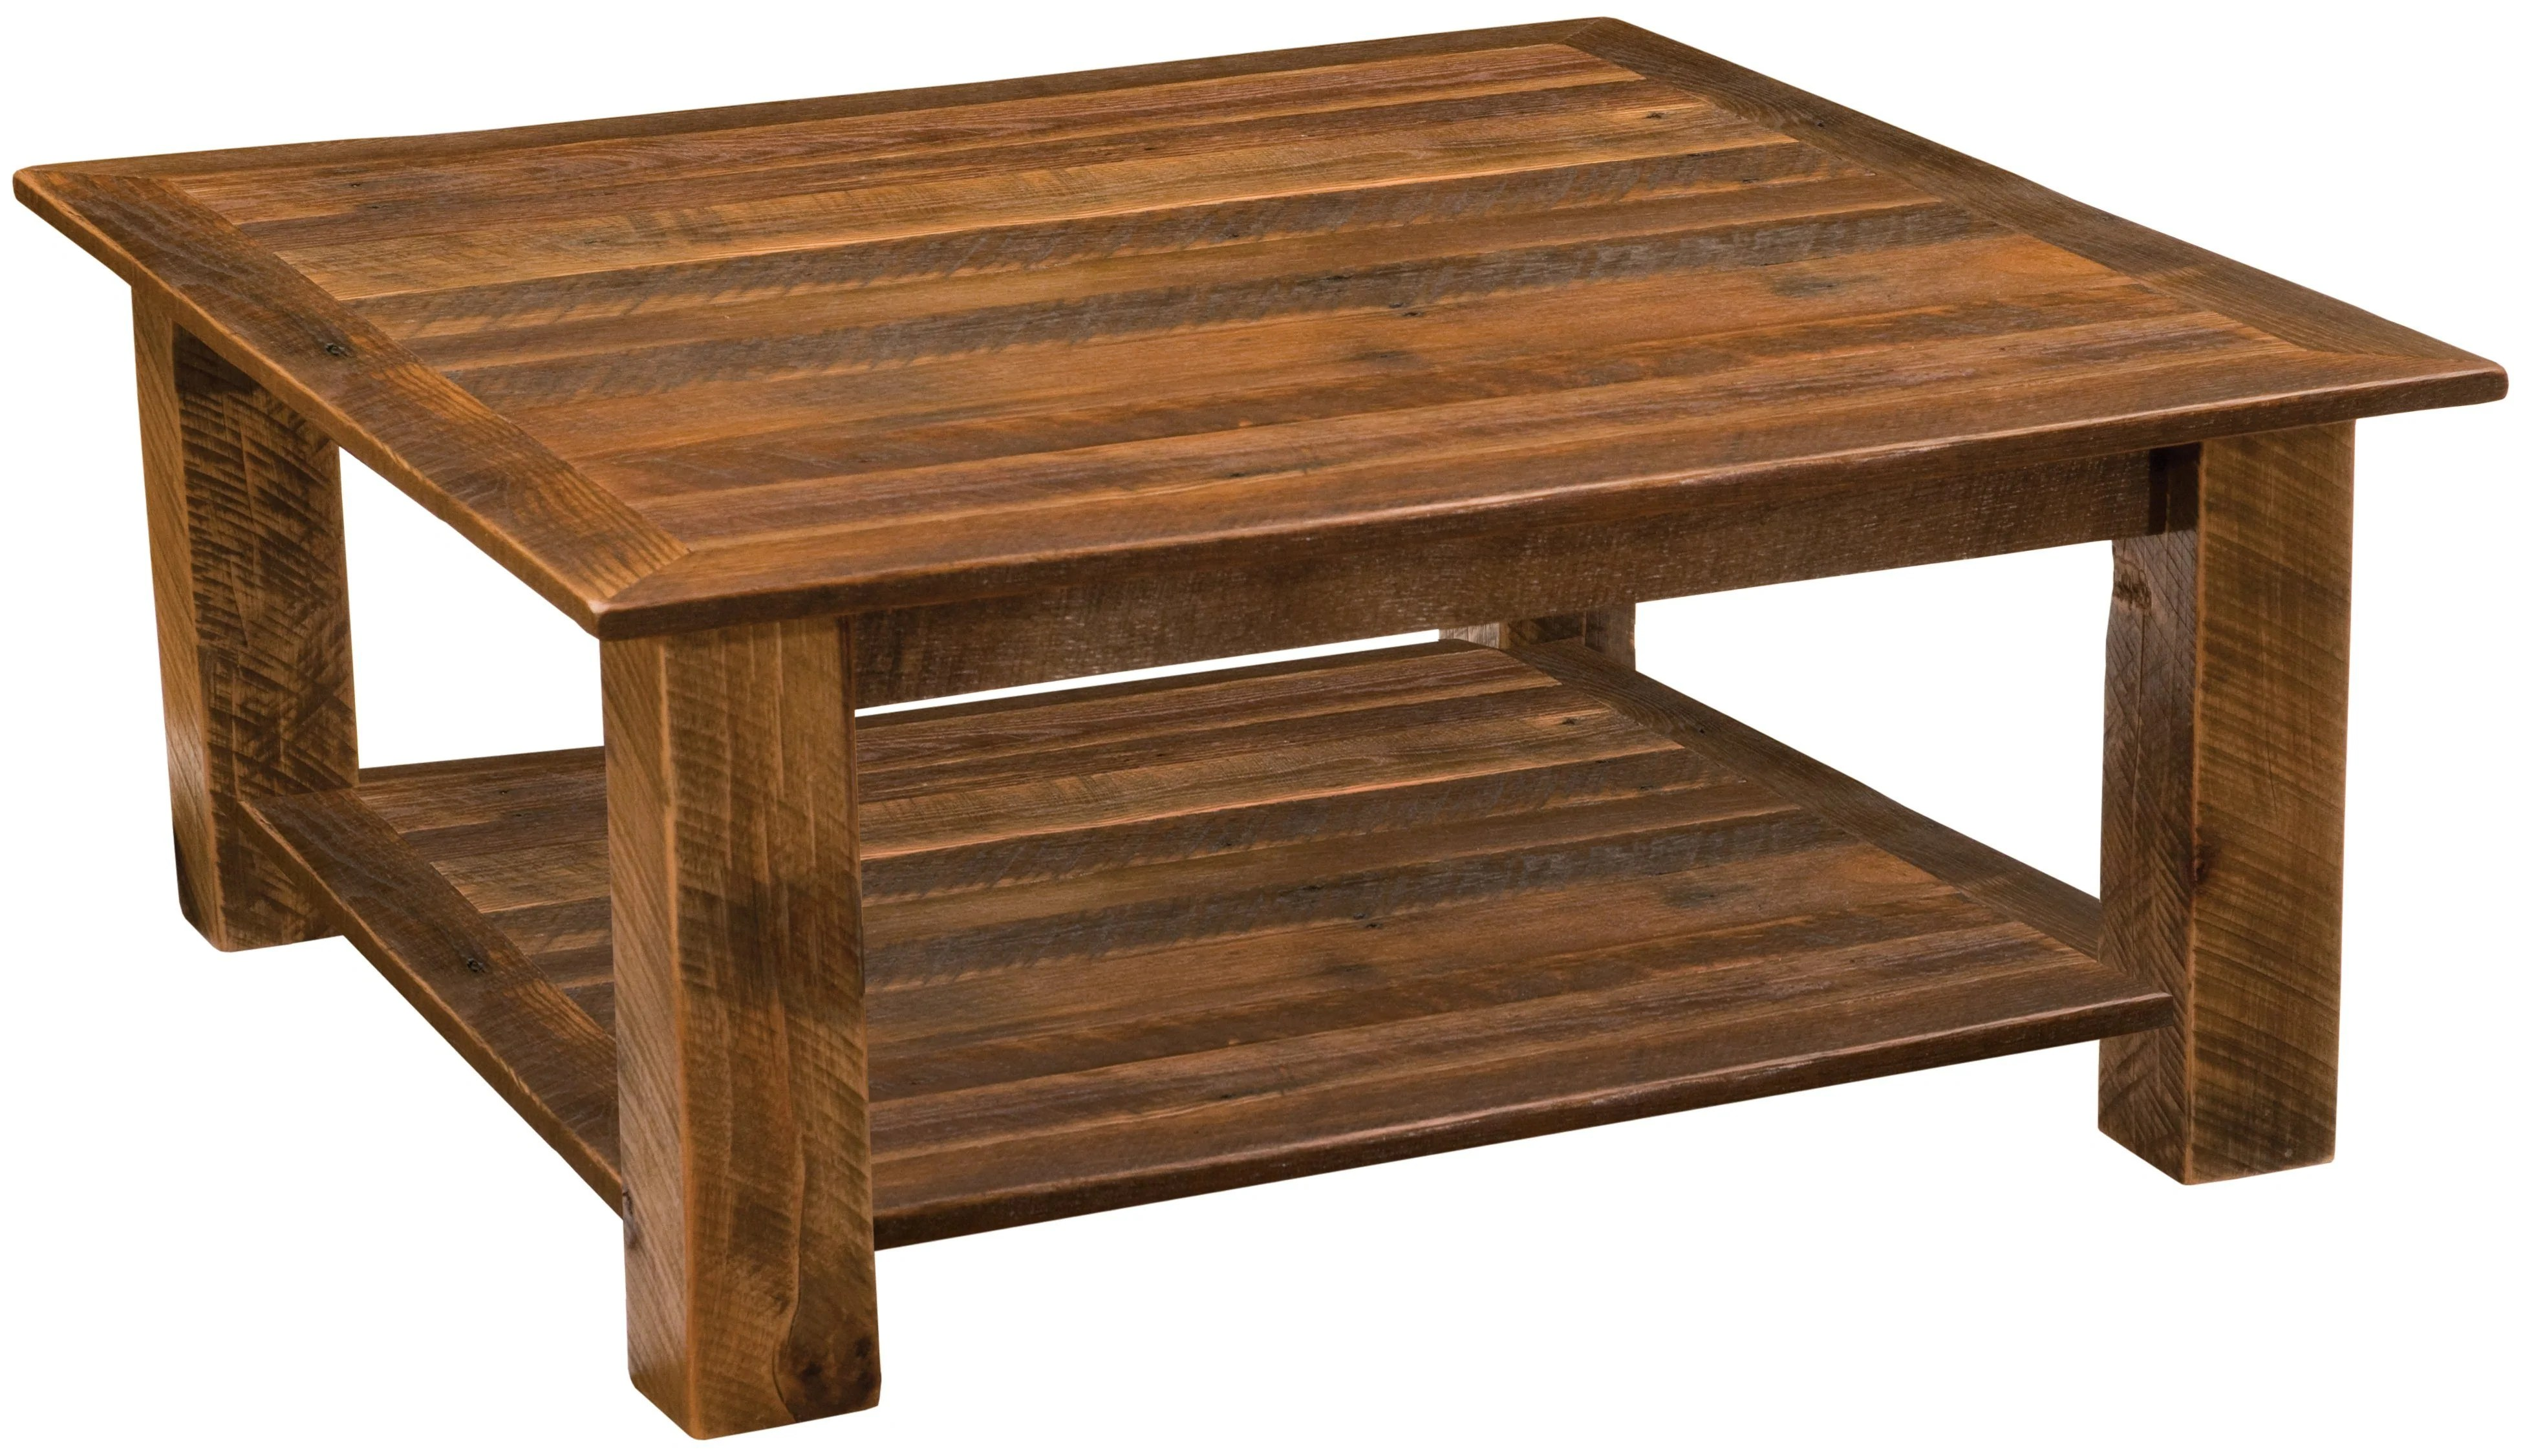 barnwood open square coffee table with shelf 34 x 34 and 42 x 42